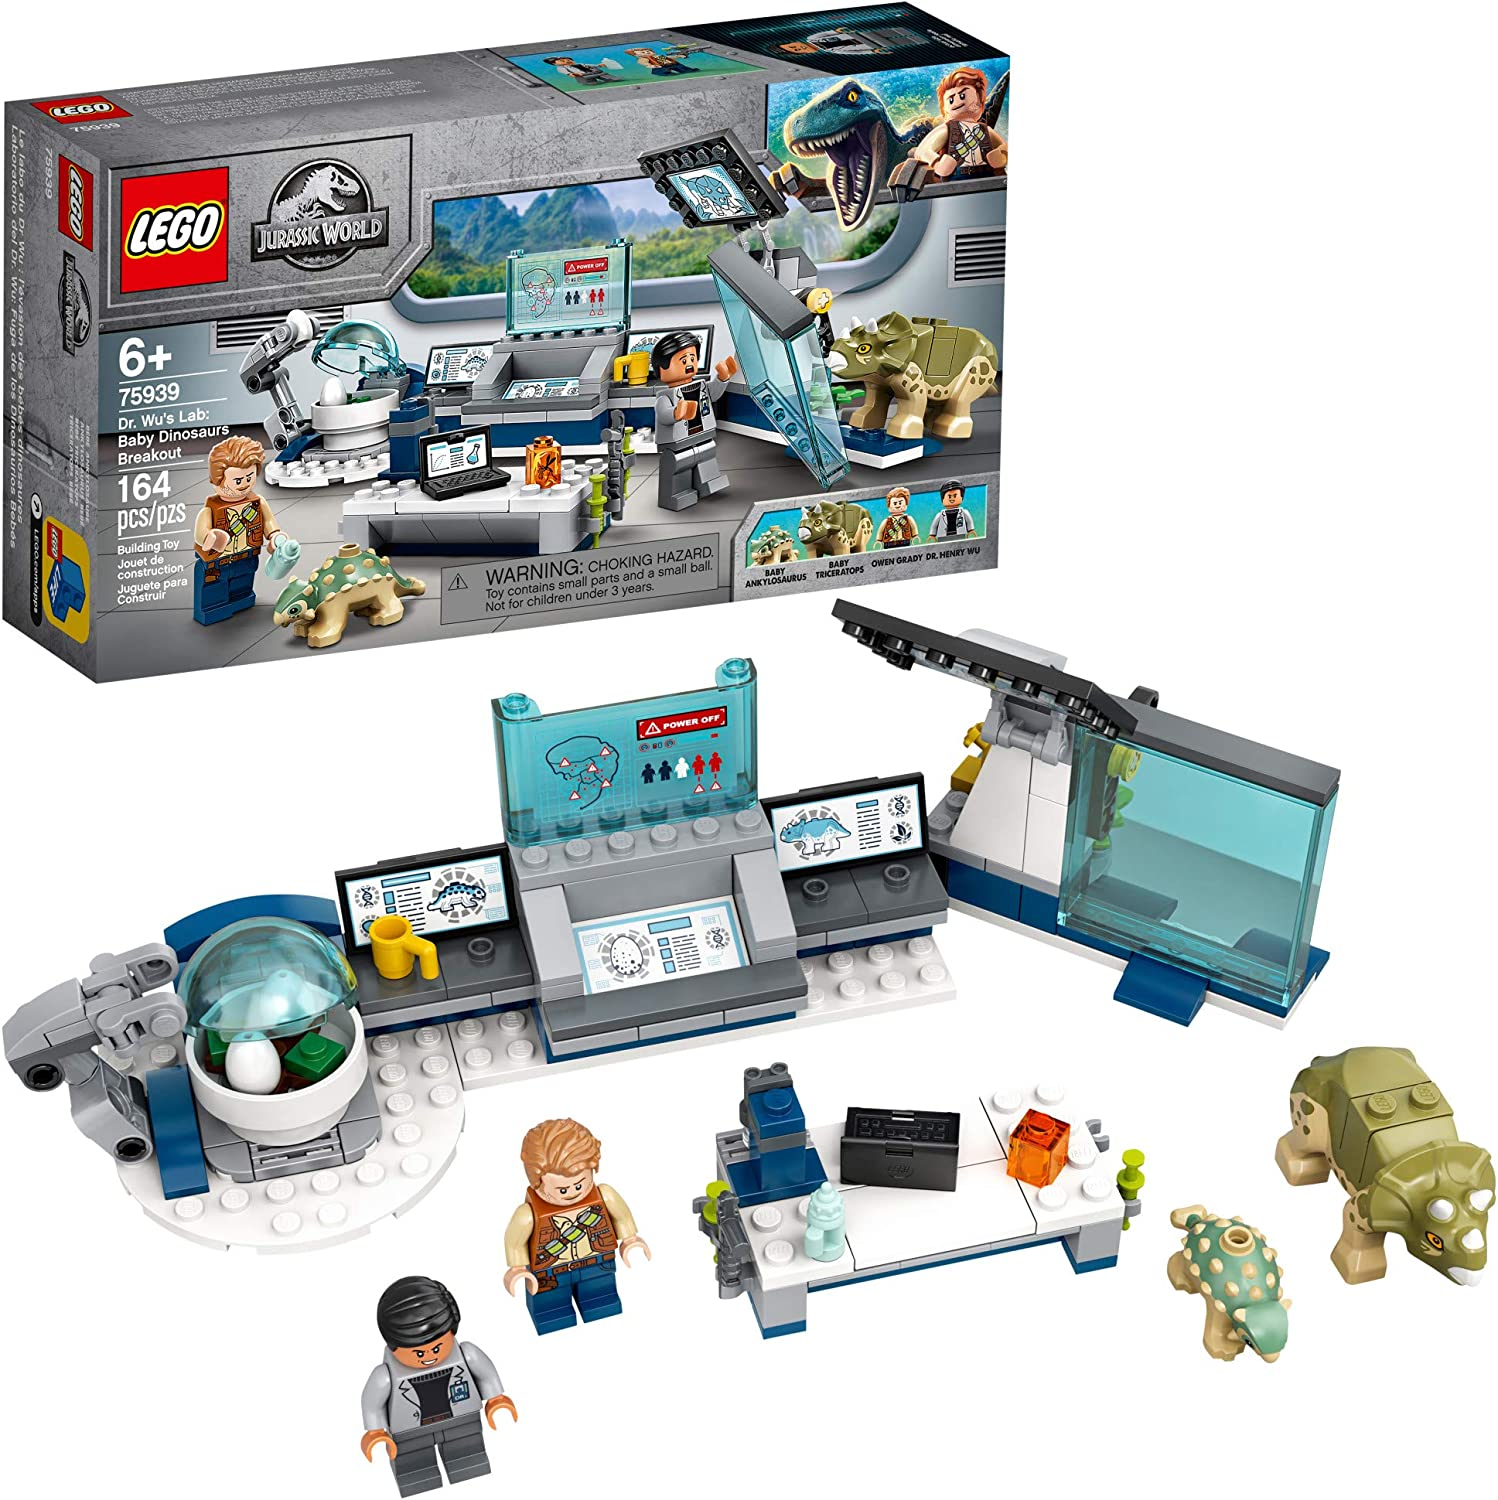 LEGO Jurassic World Dr. Wu's Lab: Baby Dinosaurs Breakout 75939 Fun Dinosaur Toy Building Kit, Featuring Owen Grady, Plus Baby Triceratops and Ankylosaurus Toy Dinosaur Figures, New 2020 (164 Pieces)